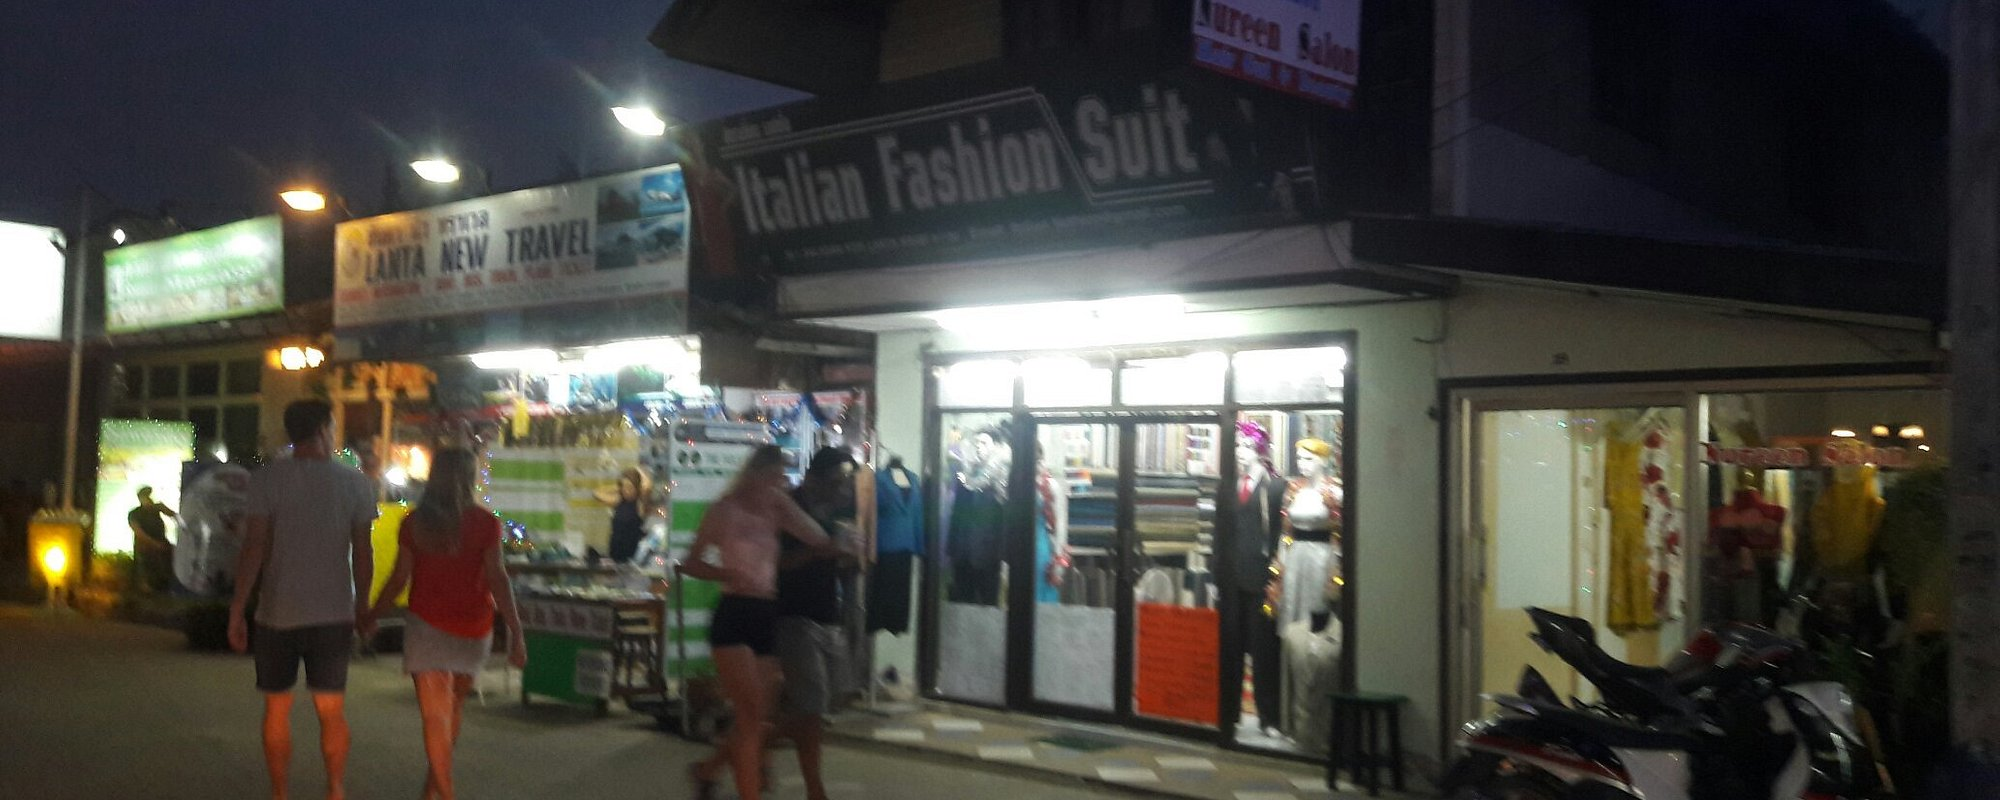 Welcome to koh lanta Salanda waking streets Italian fashion suite was waiting for you make nice thing and big sell for special for New Year